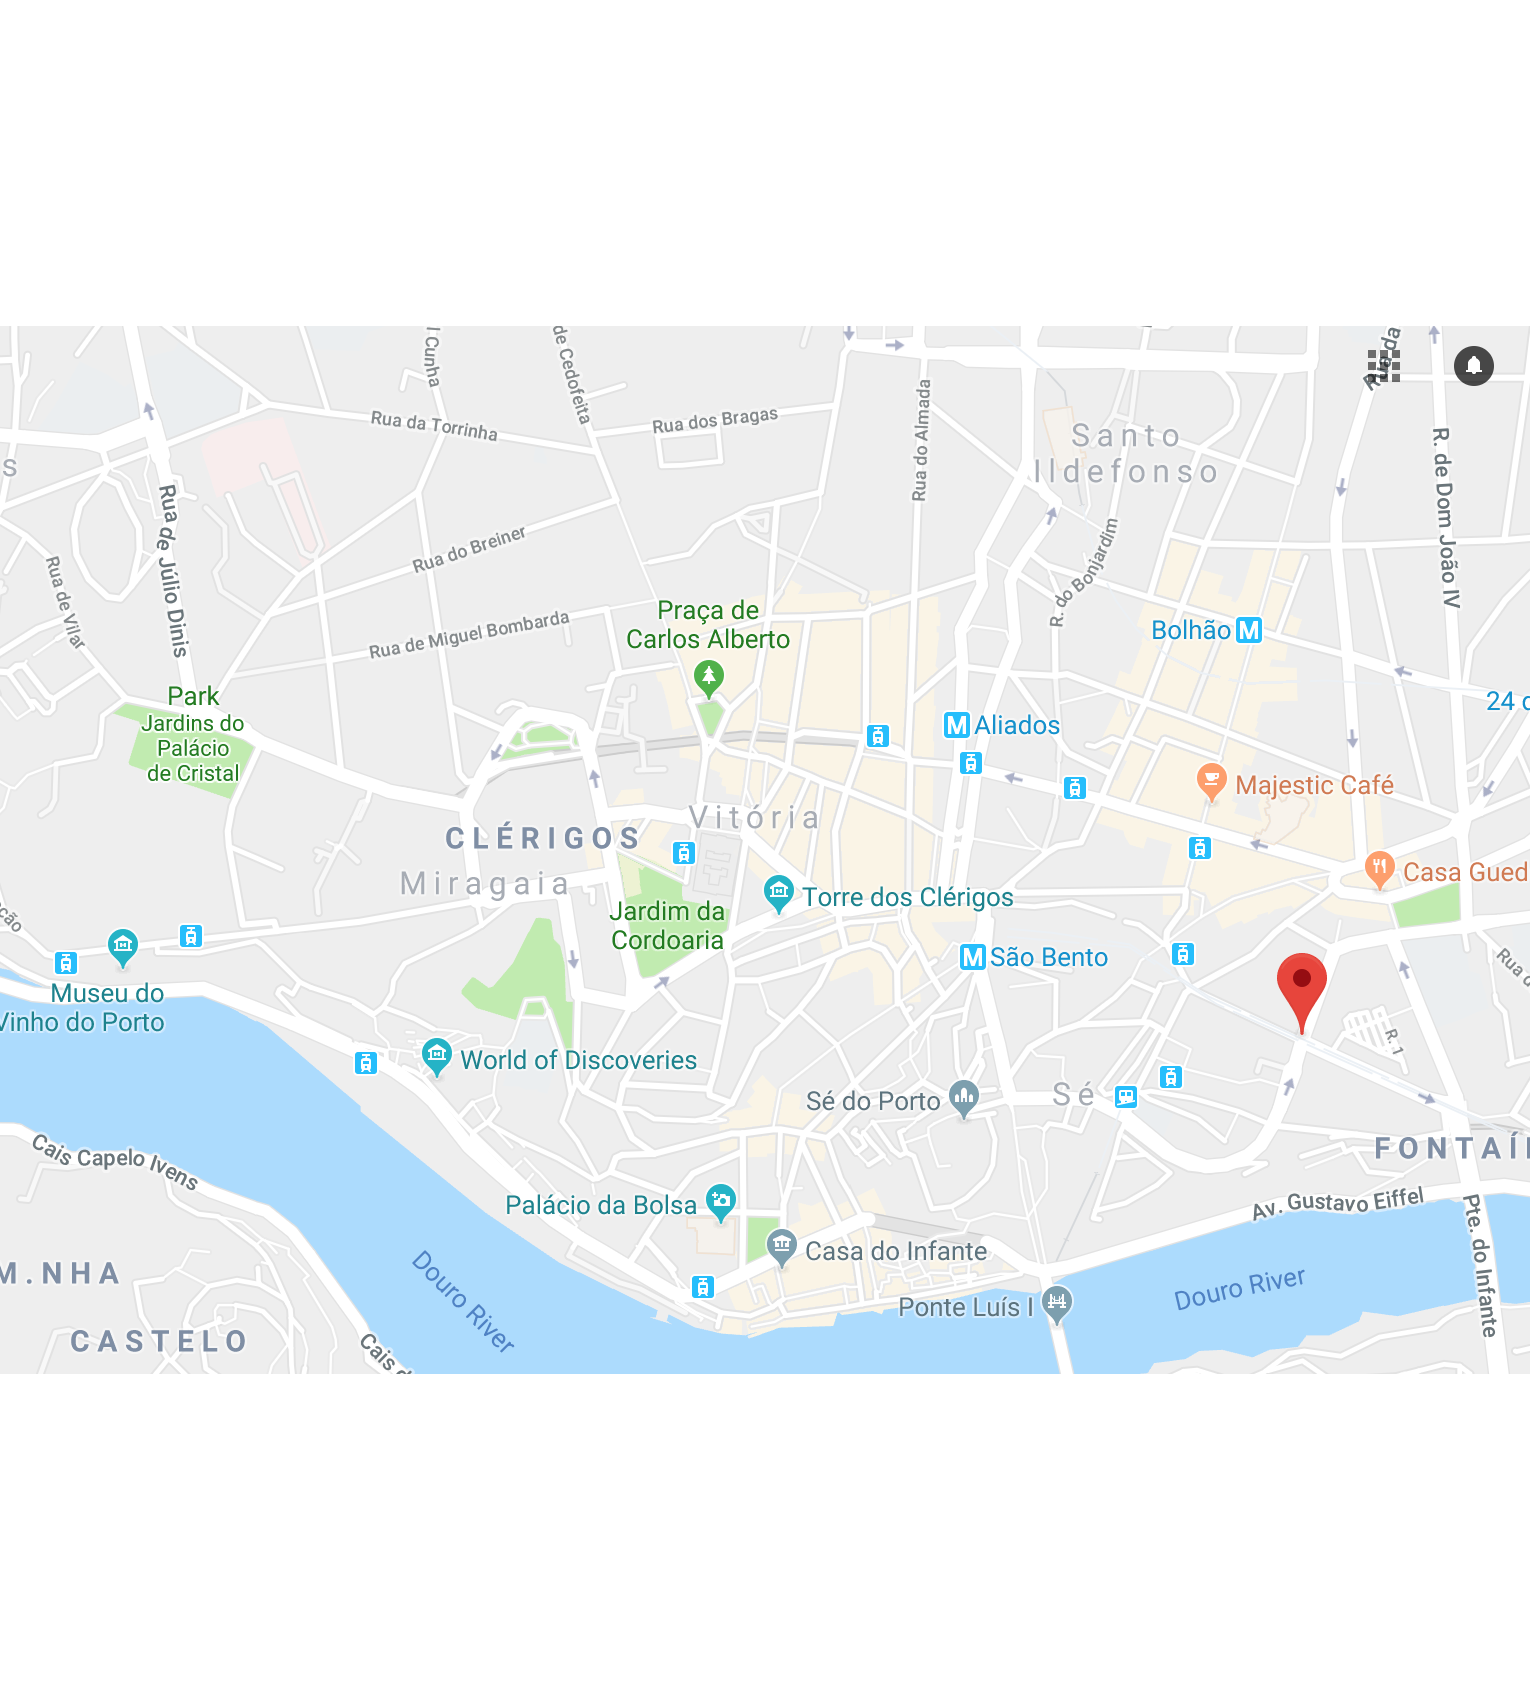 Address: - Rua Do Duque De Loulé 185-187Porto 4000-325We are situated at walking distance of any main hot spot in the city center. Yes, this with some up and down hills. The complete opposite side of the City (Palacio de Cristal)is just 2.1km away.If you take public transport, there are metro stations within 5min walk. The bus terminal is just 50m down the street.We believe our area is upcoming, between the city center and Bonfim (a quiet, relaxed place to stay).Also most of the Specialty Coffee of Porto is in this Area.